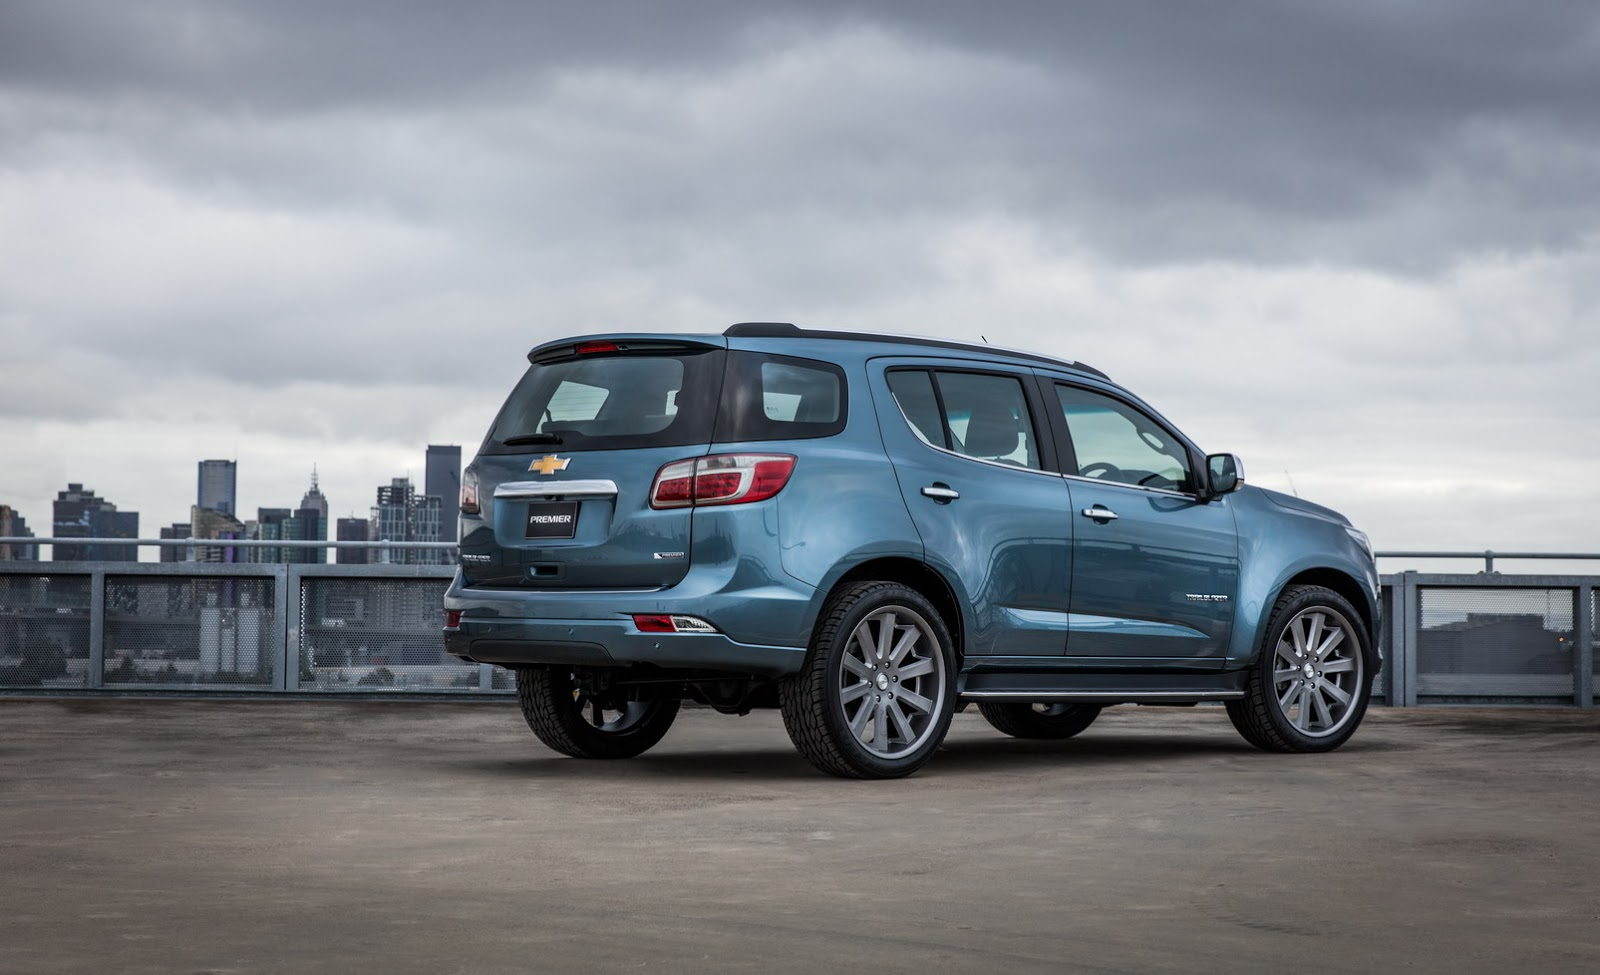 5 Signs the Chevrolet Blazer Could Comeback - GM Inside News